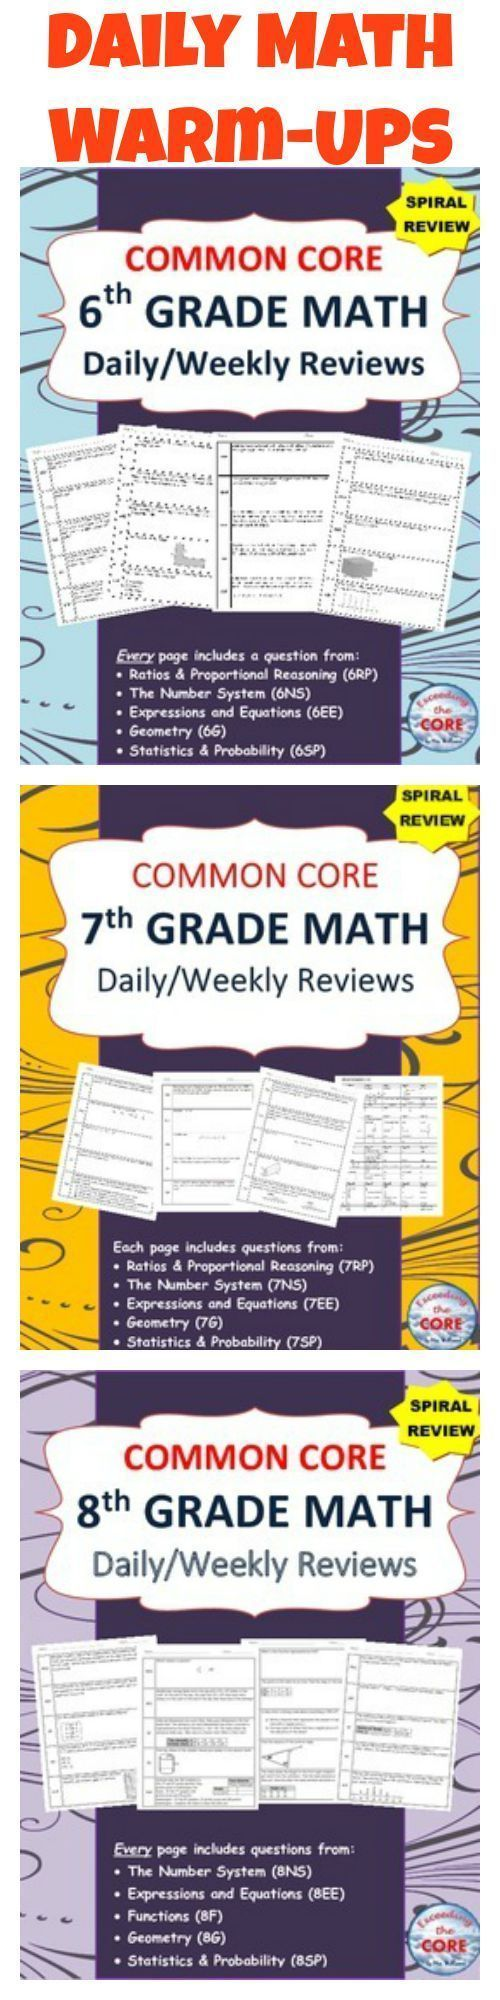 Daily WARM-UPS for the 6th Grade Math, 7th Grade Math, and 8th Grade Math COMMON CORE. This resource is perfect for SPIRAL REVIEW of the Common Core standards. These COMMON CORE MATH resources contains 20 WEEKS of review specifically written for the common core math standards for 6th, 7th & 8th grade. The review sheets are organized into 5 boxes. Each box contains problems from the 5 domains of the  CCSS standards.  This resource can be used for WARM UPS, TEST PREP, HOMEWORK and math…